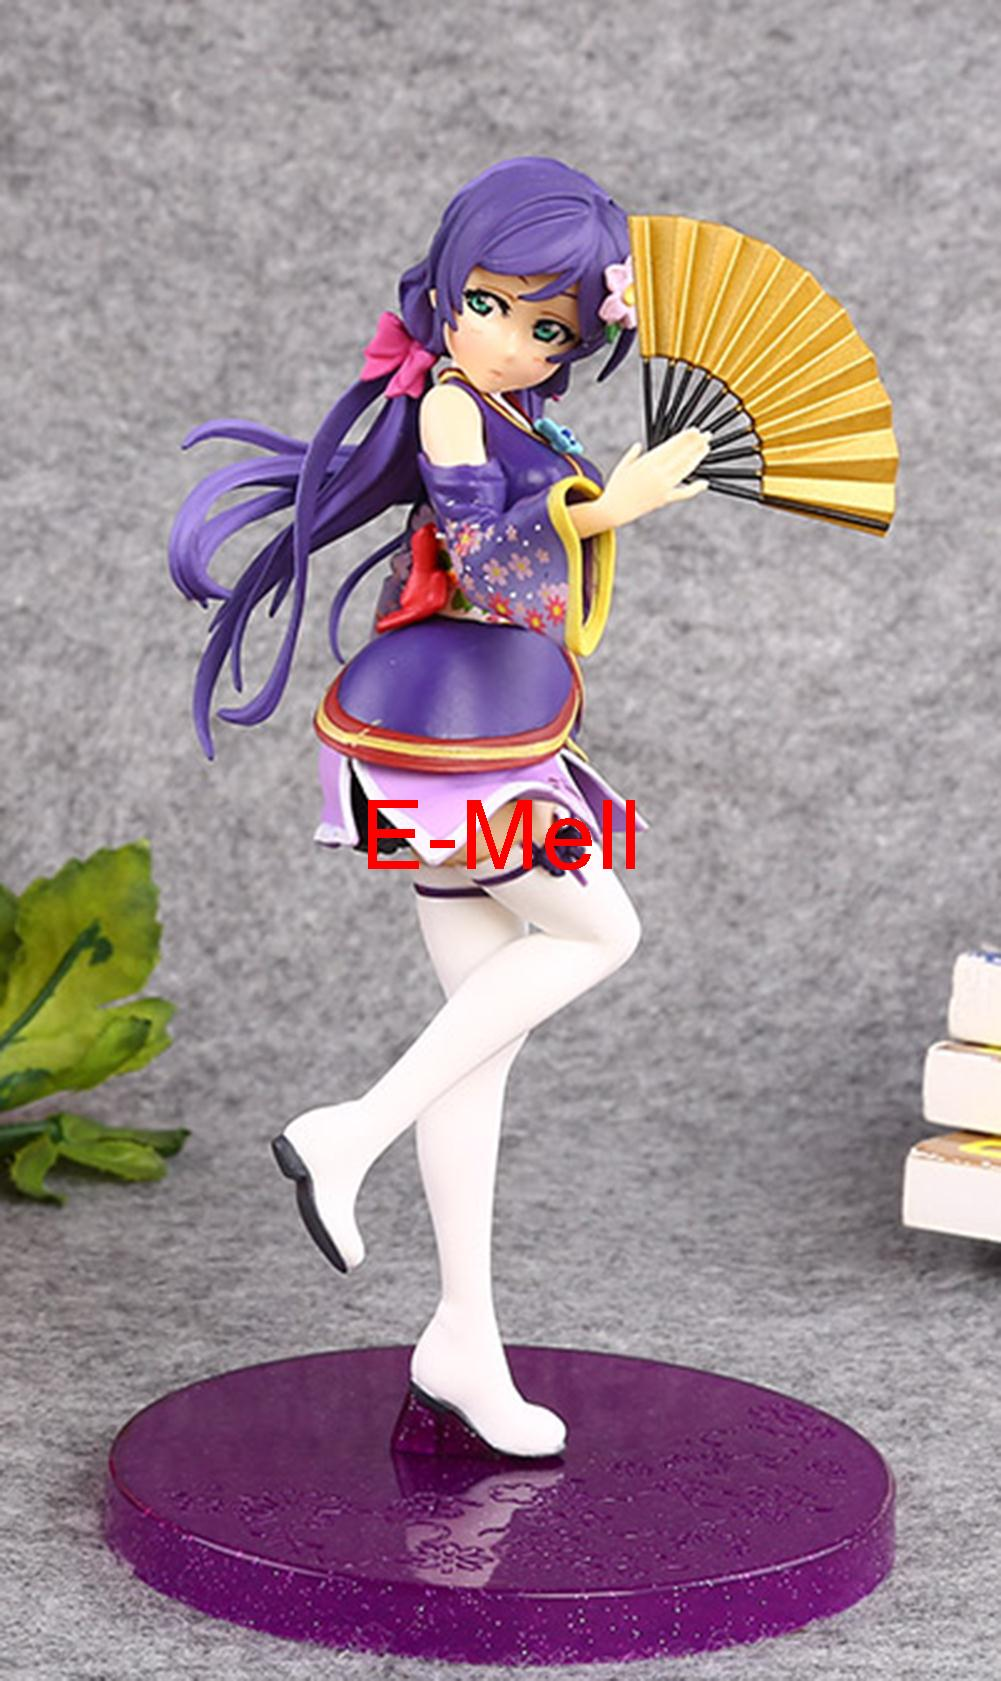 17cm/6.7'' Q Version Cosplay LoveLive Love Live Tojo Nozomi Garage Kit PVC Action Figures Toys GK folding fan Model vogue long with double braided love live tojo nozomi awake cheongsam fairytale style cosplay wig